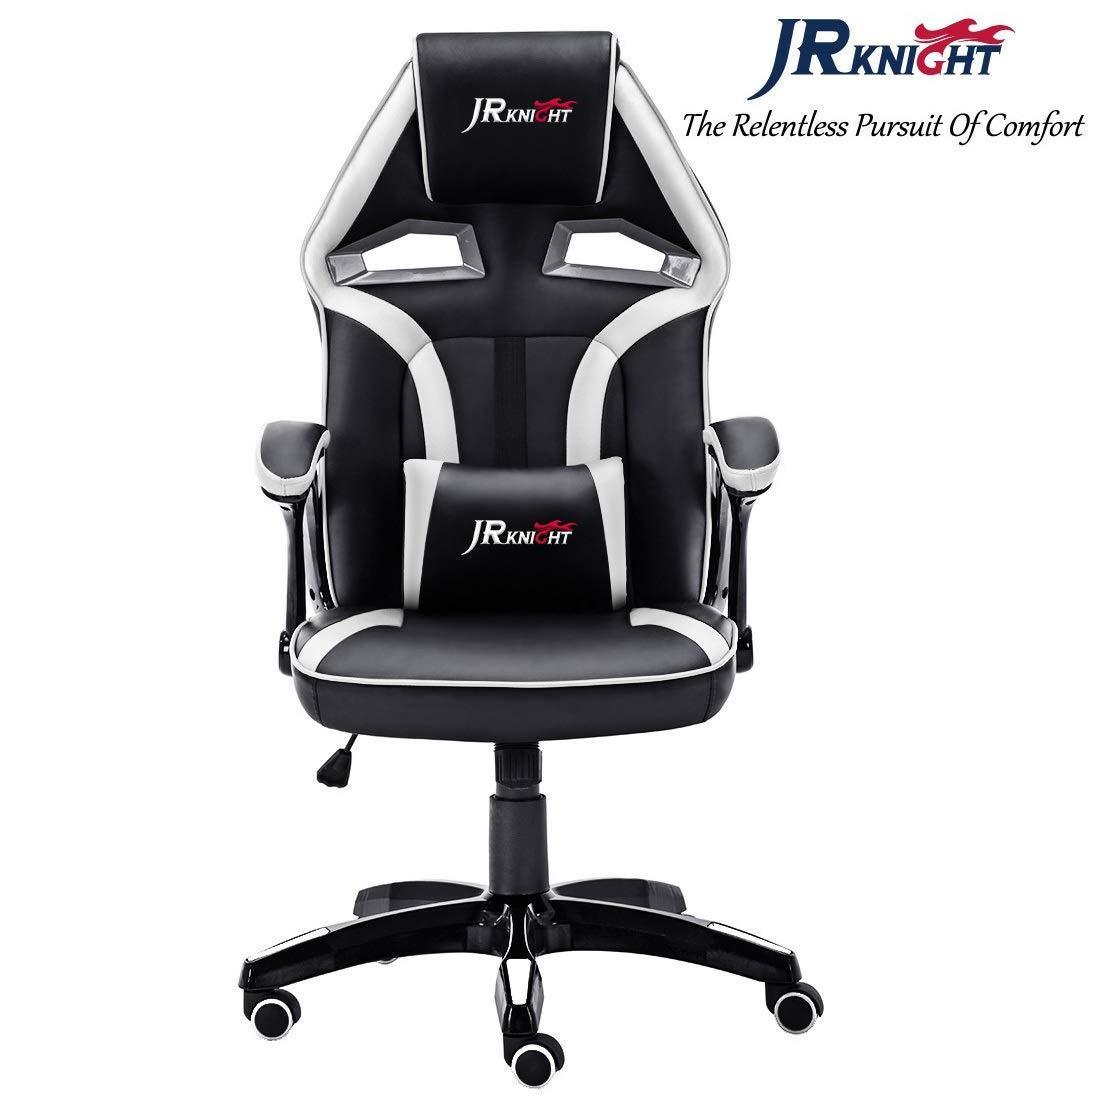 JR Knight Racing Chair, Renovation Alien Design Home Office Computer Gaming Exclusive Swivel Leather Chair (Black&Blue) [Energy Class A+++] JR Knight Furniture